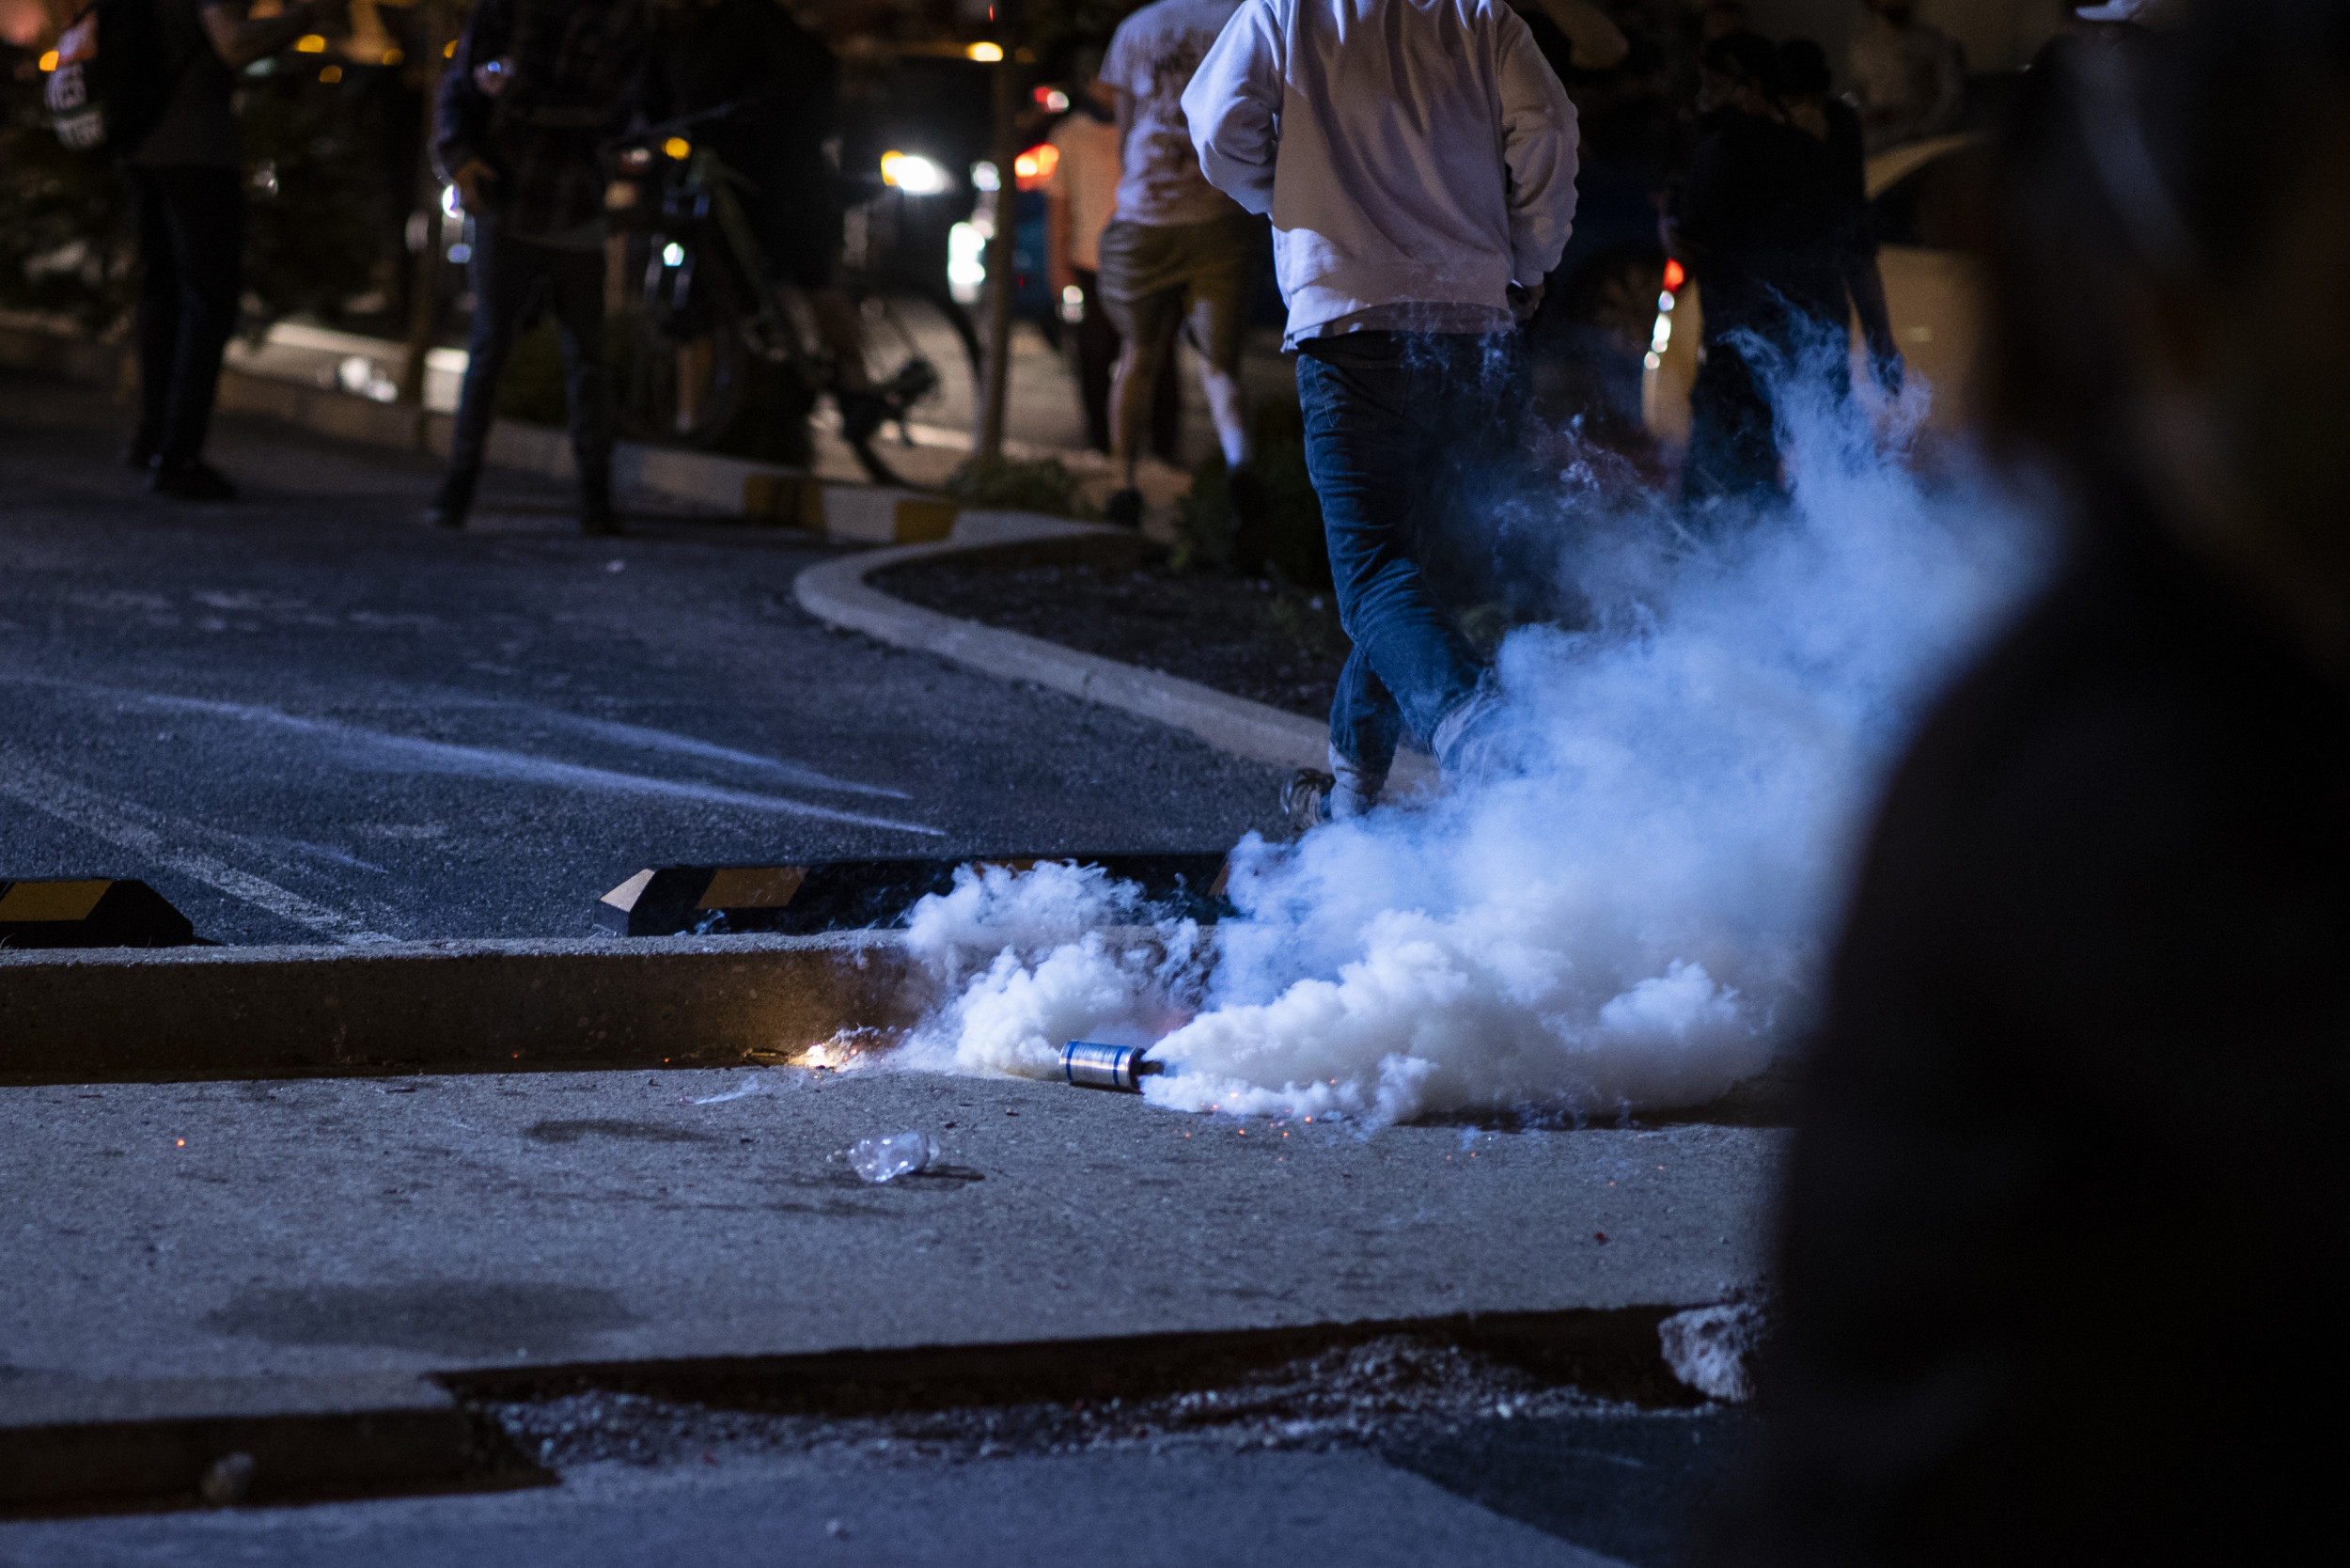 State lawmakers, city council members introduce legislation to ban use of tear gas by law enforcement following protests